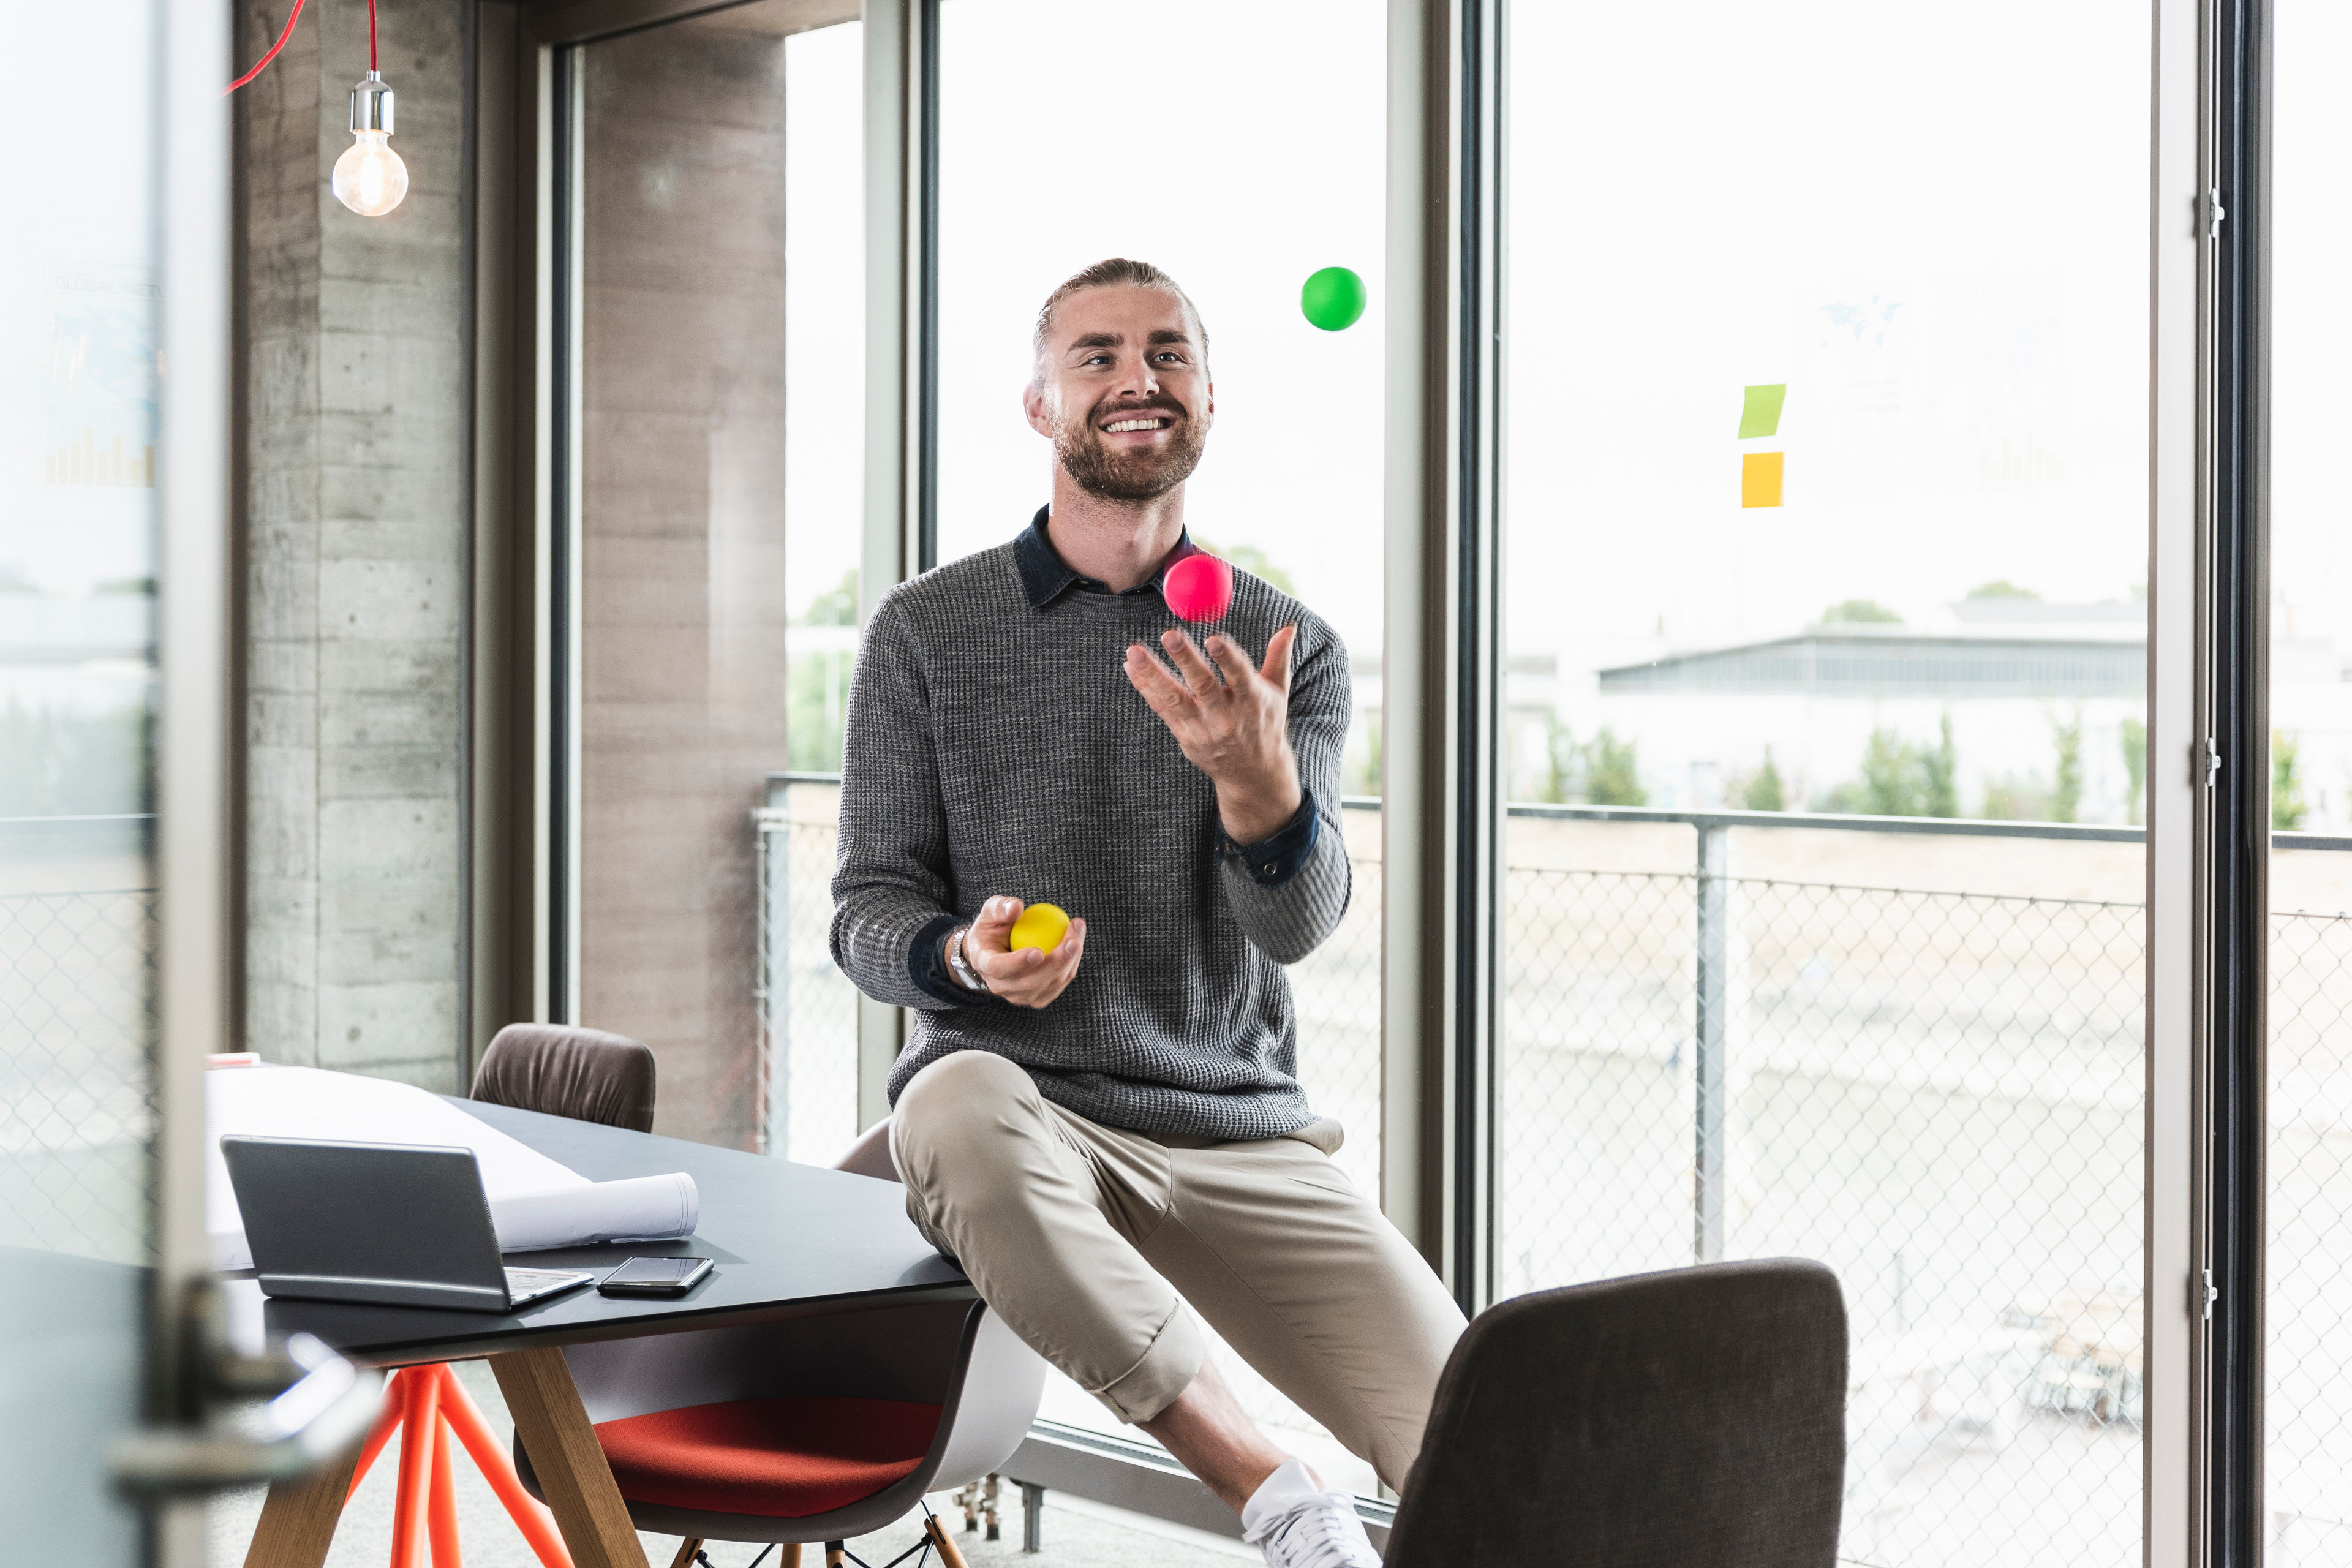 Smiling businessman juggling with balls